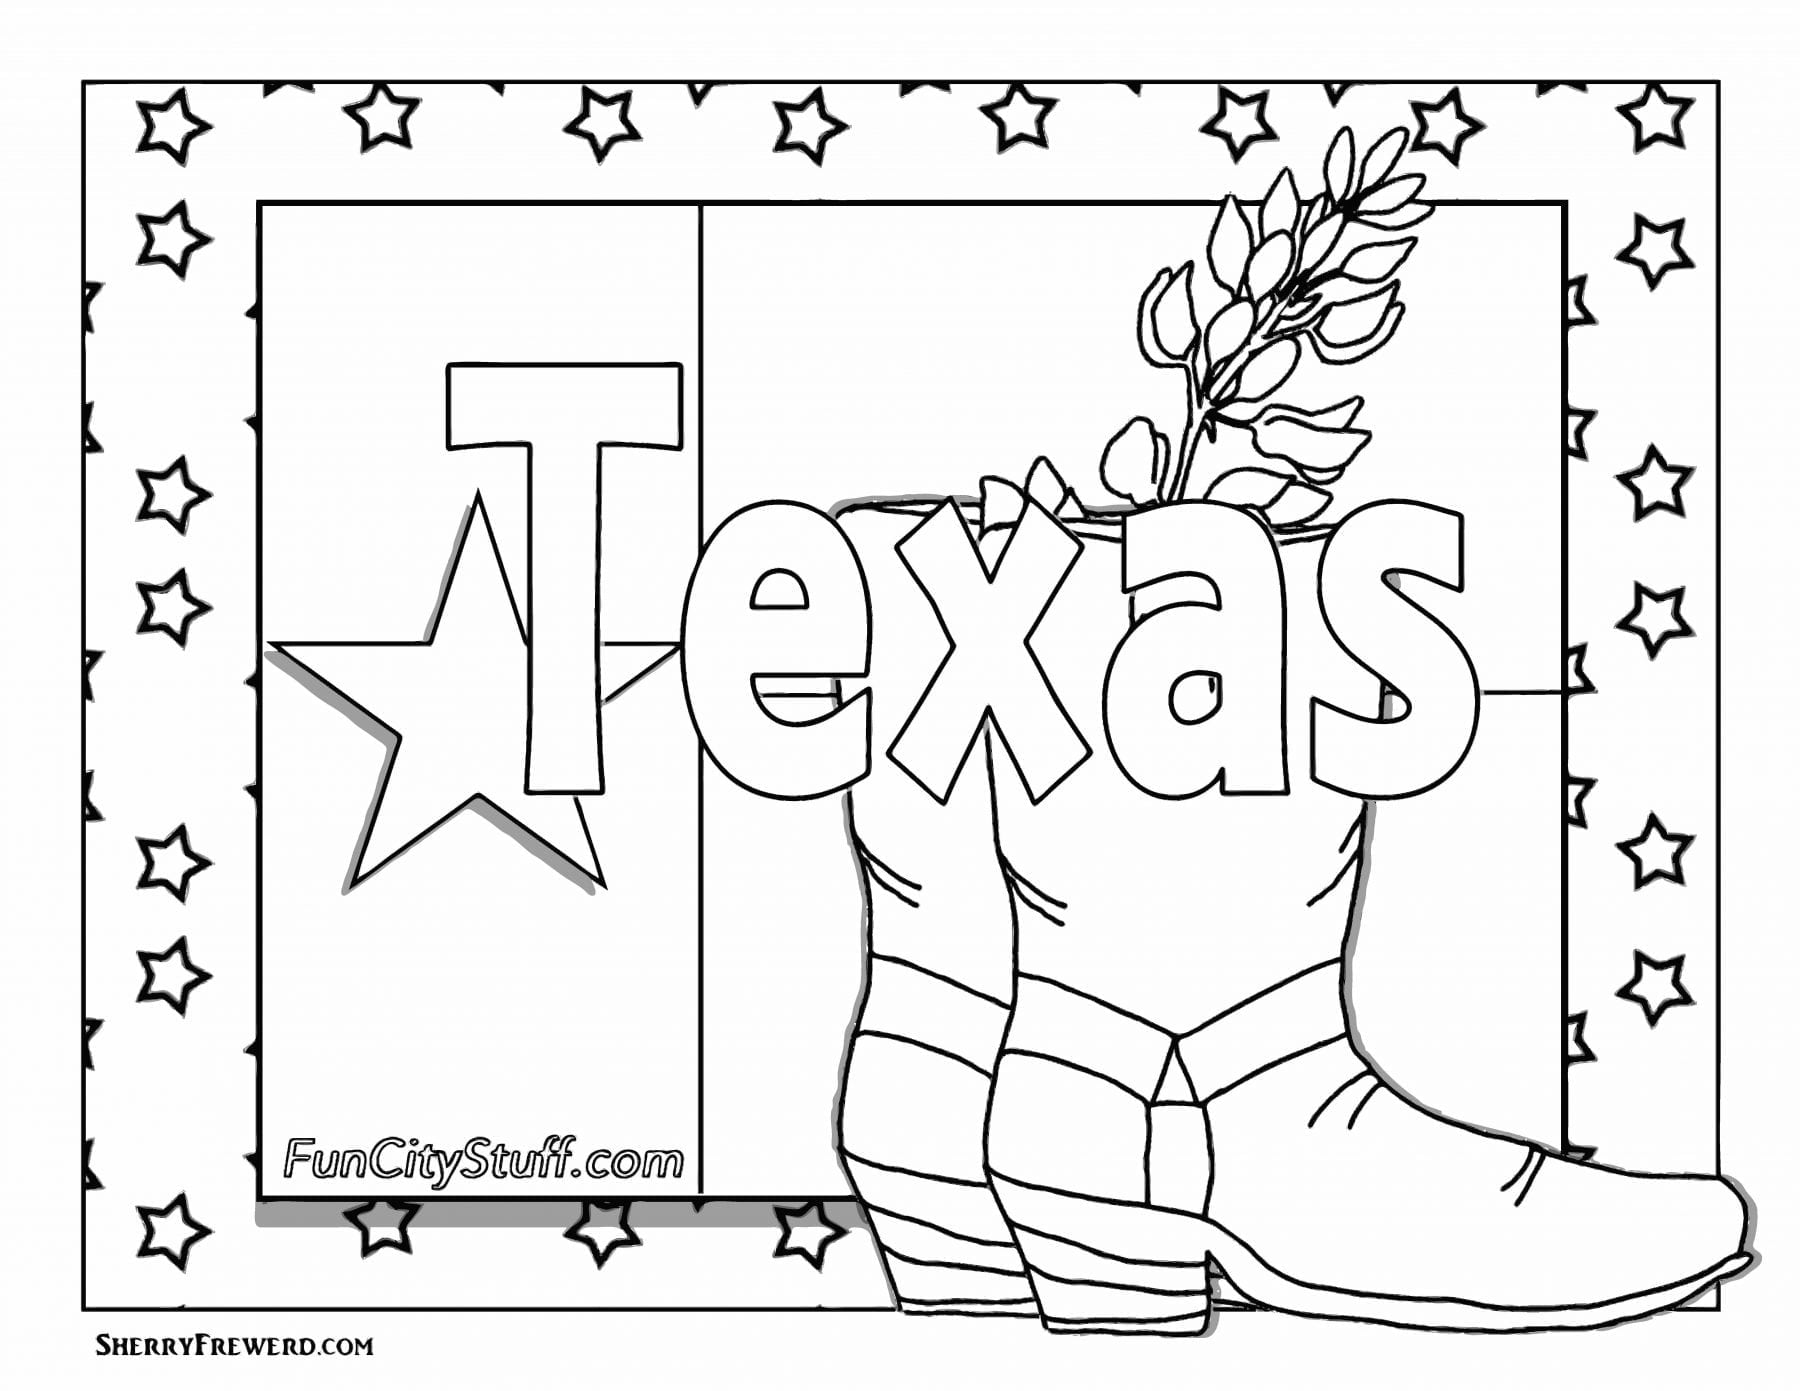 Texas state symbols worksheets free worksheets library for Texas a m coloring pages